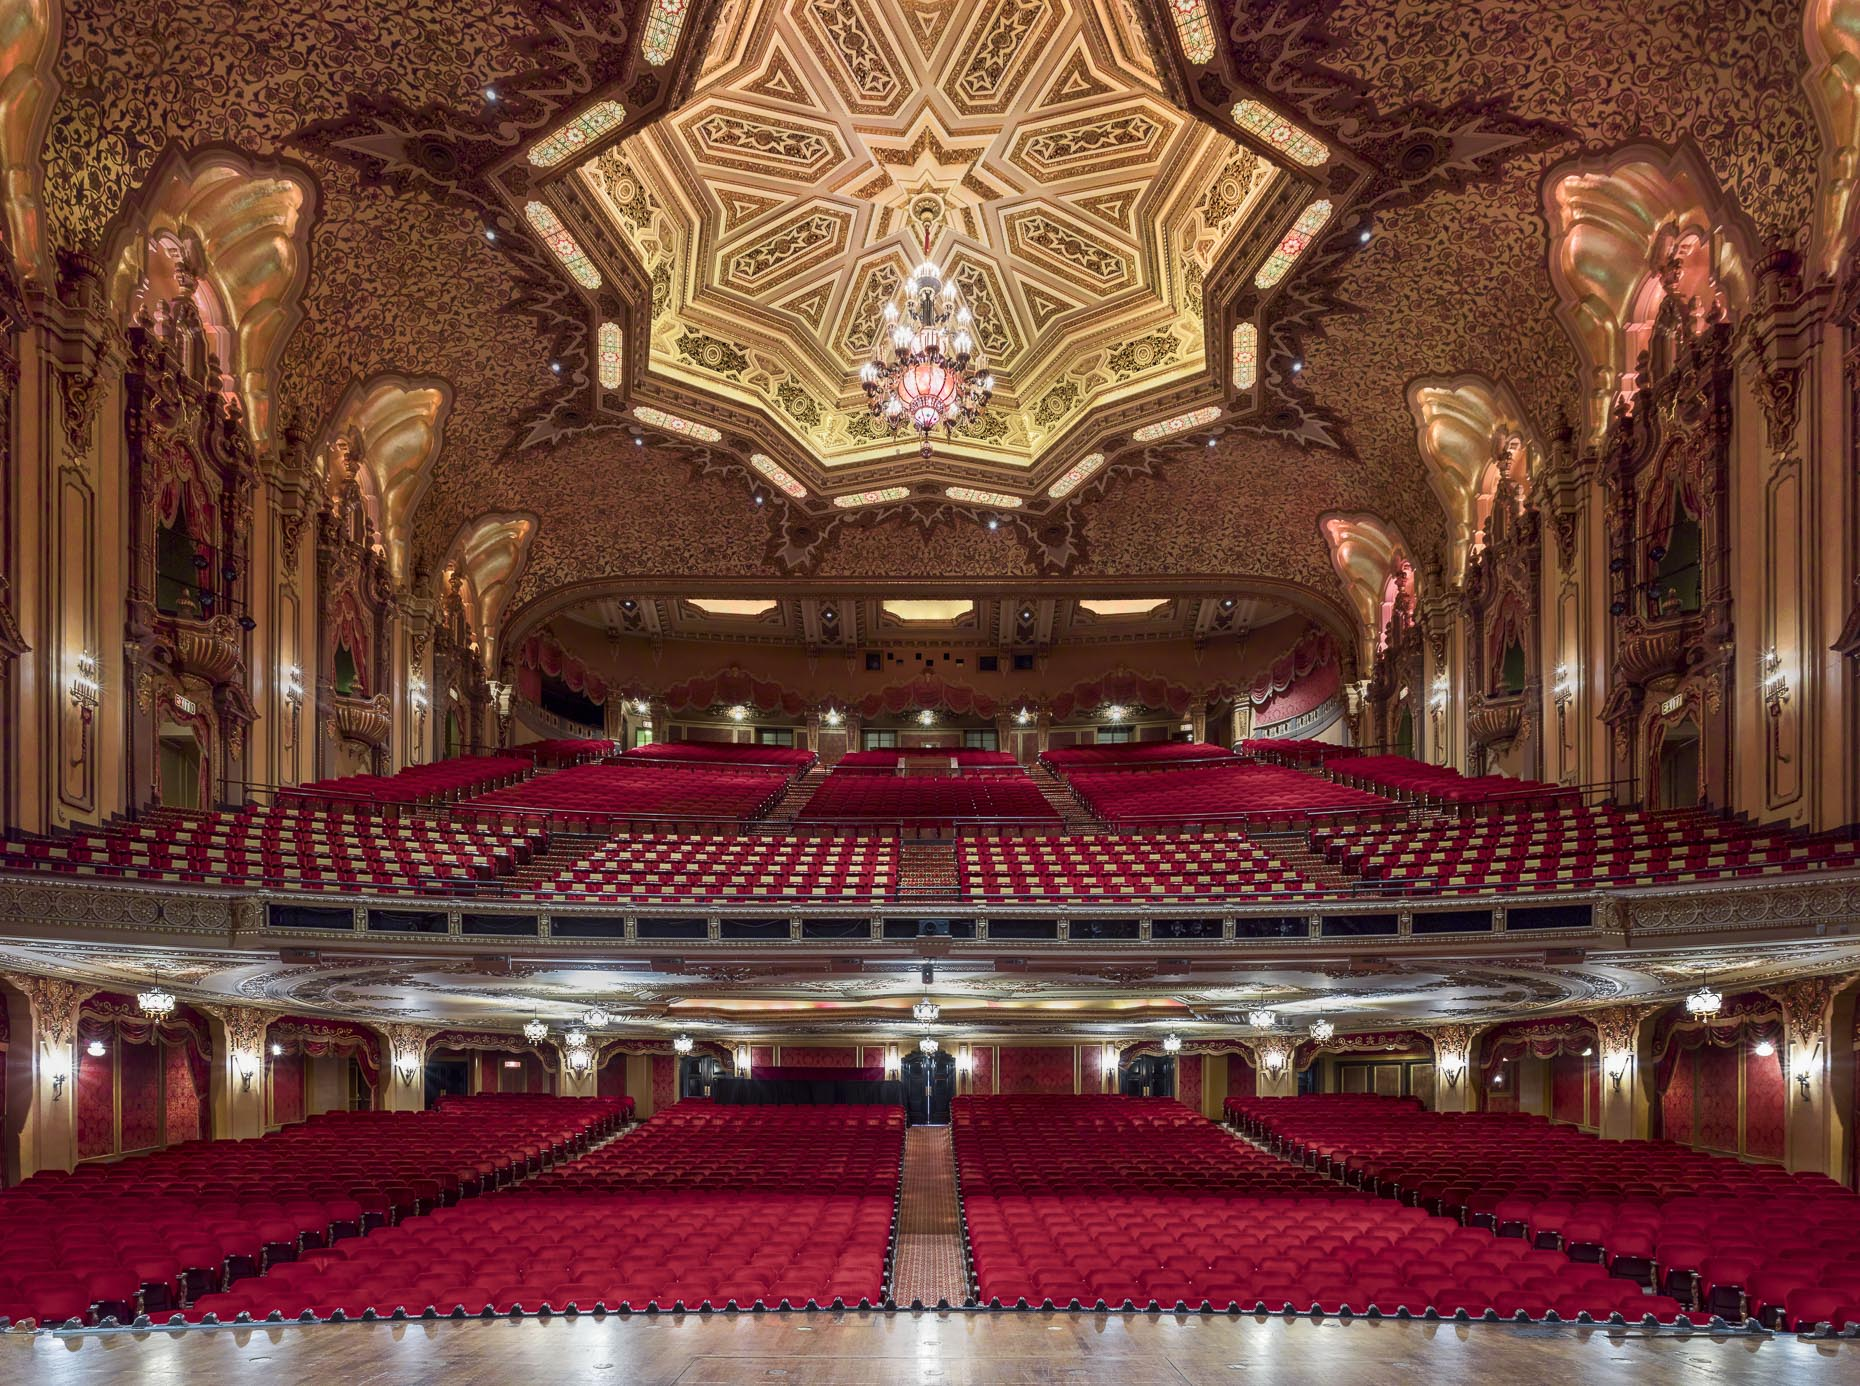 Ohio Theater for CAPA photographed by Brad Feinknopf based in Columbus, Ohio